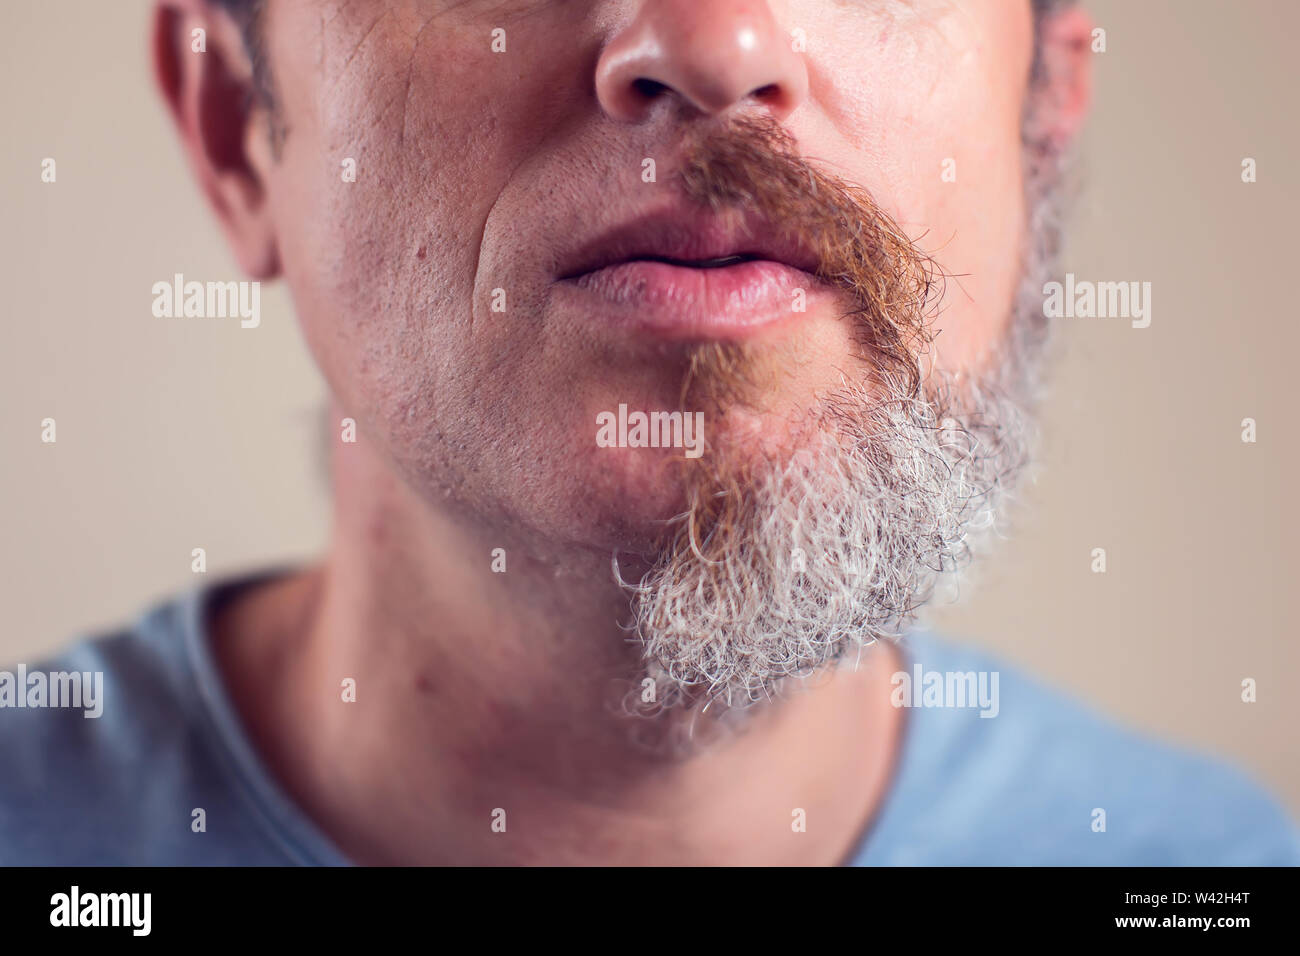 A portrait of man with half beard and hair on brown background Stock Photo